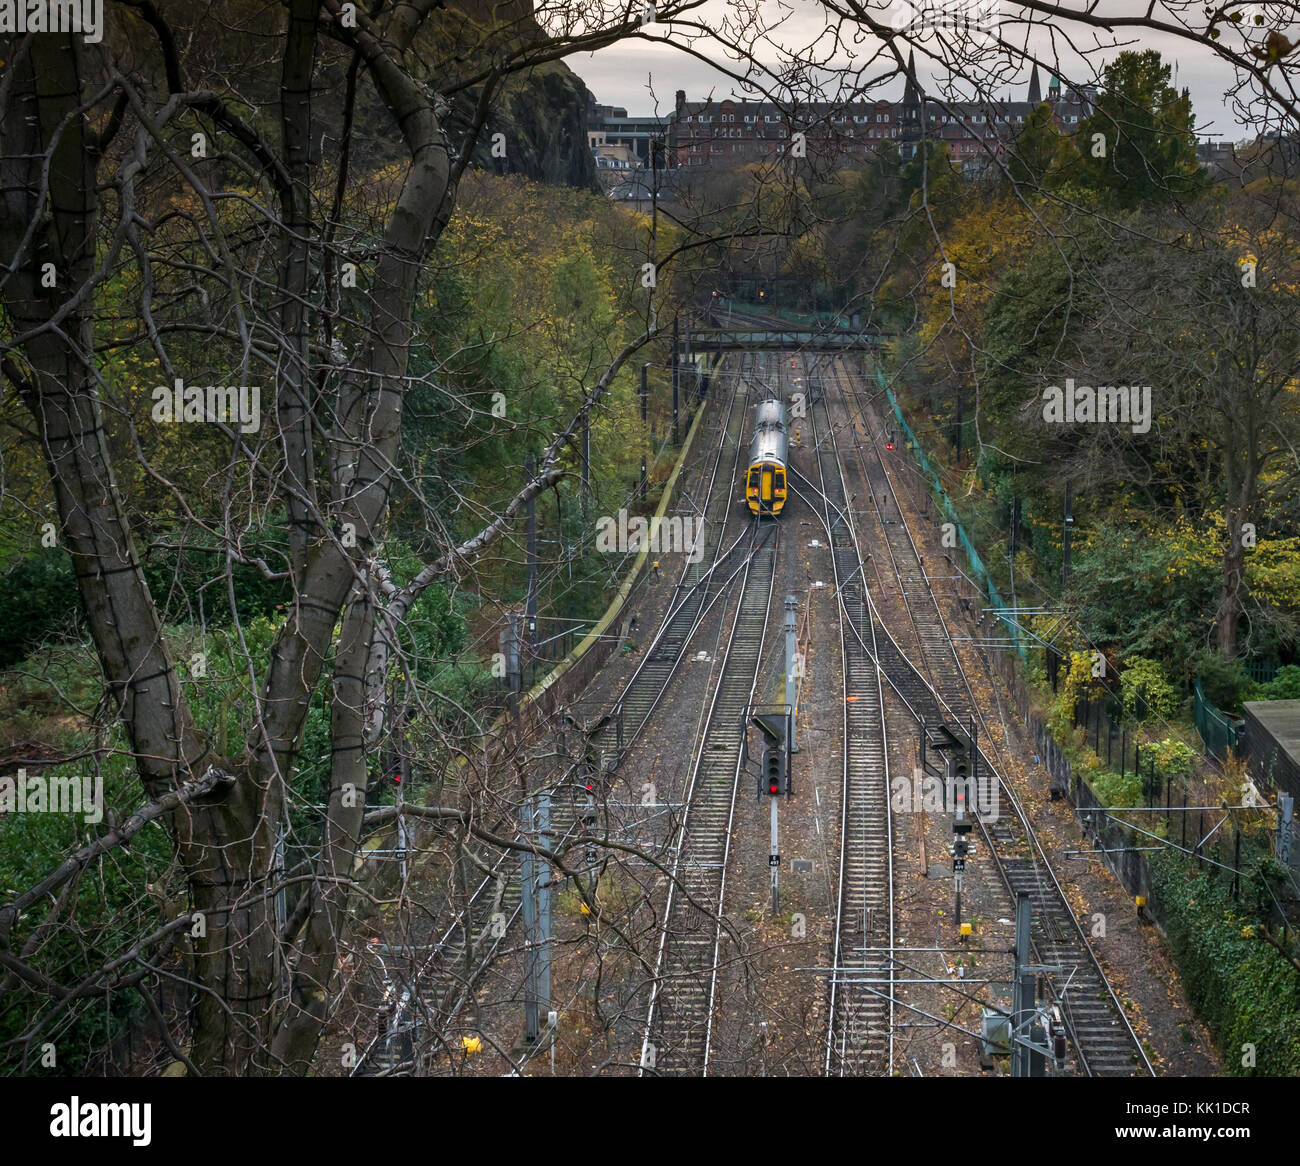 ScotRail two carriage train leaving Waverley station in Princes Street Gardens, Edinburgh, Scotland, UK, seen from - Stock Image